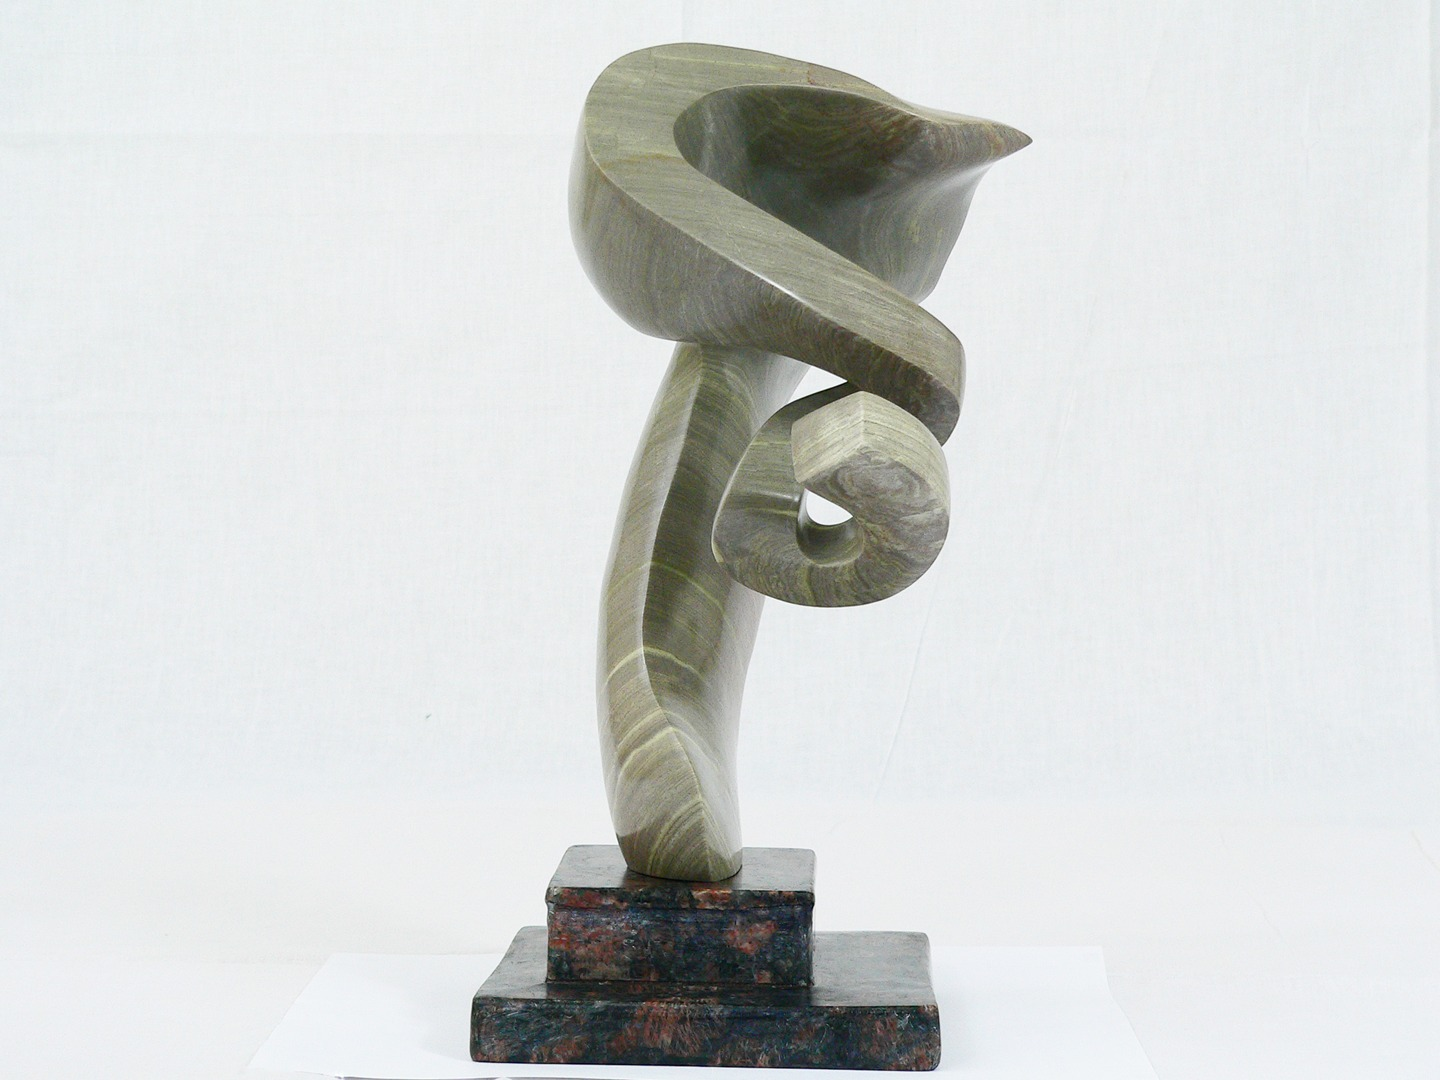 handcrafted sculpture by mildred gil parada